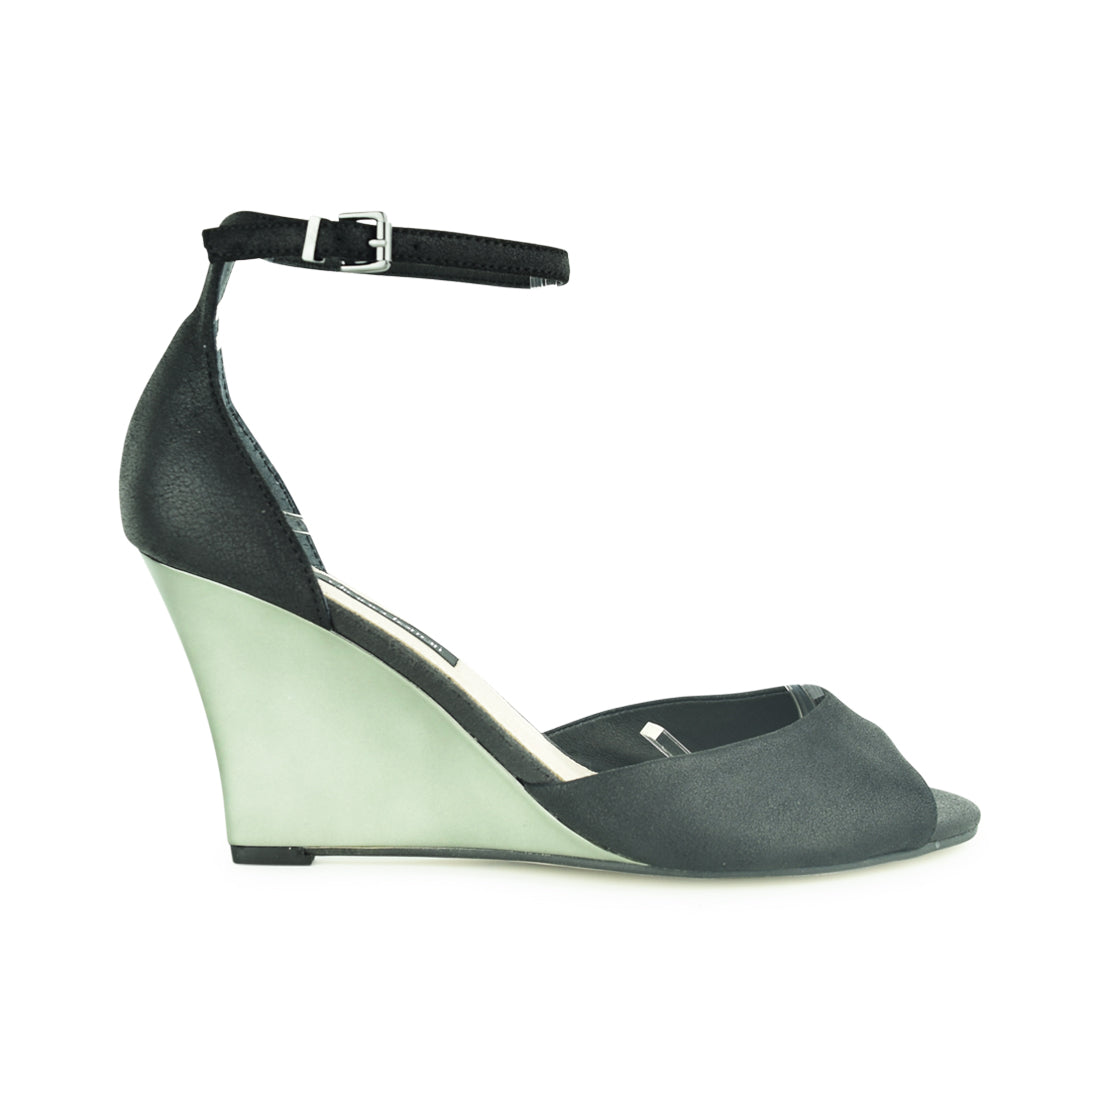 STILA - Diana Ferrari Wedge Black